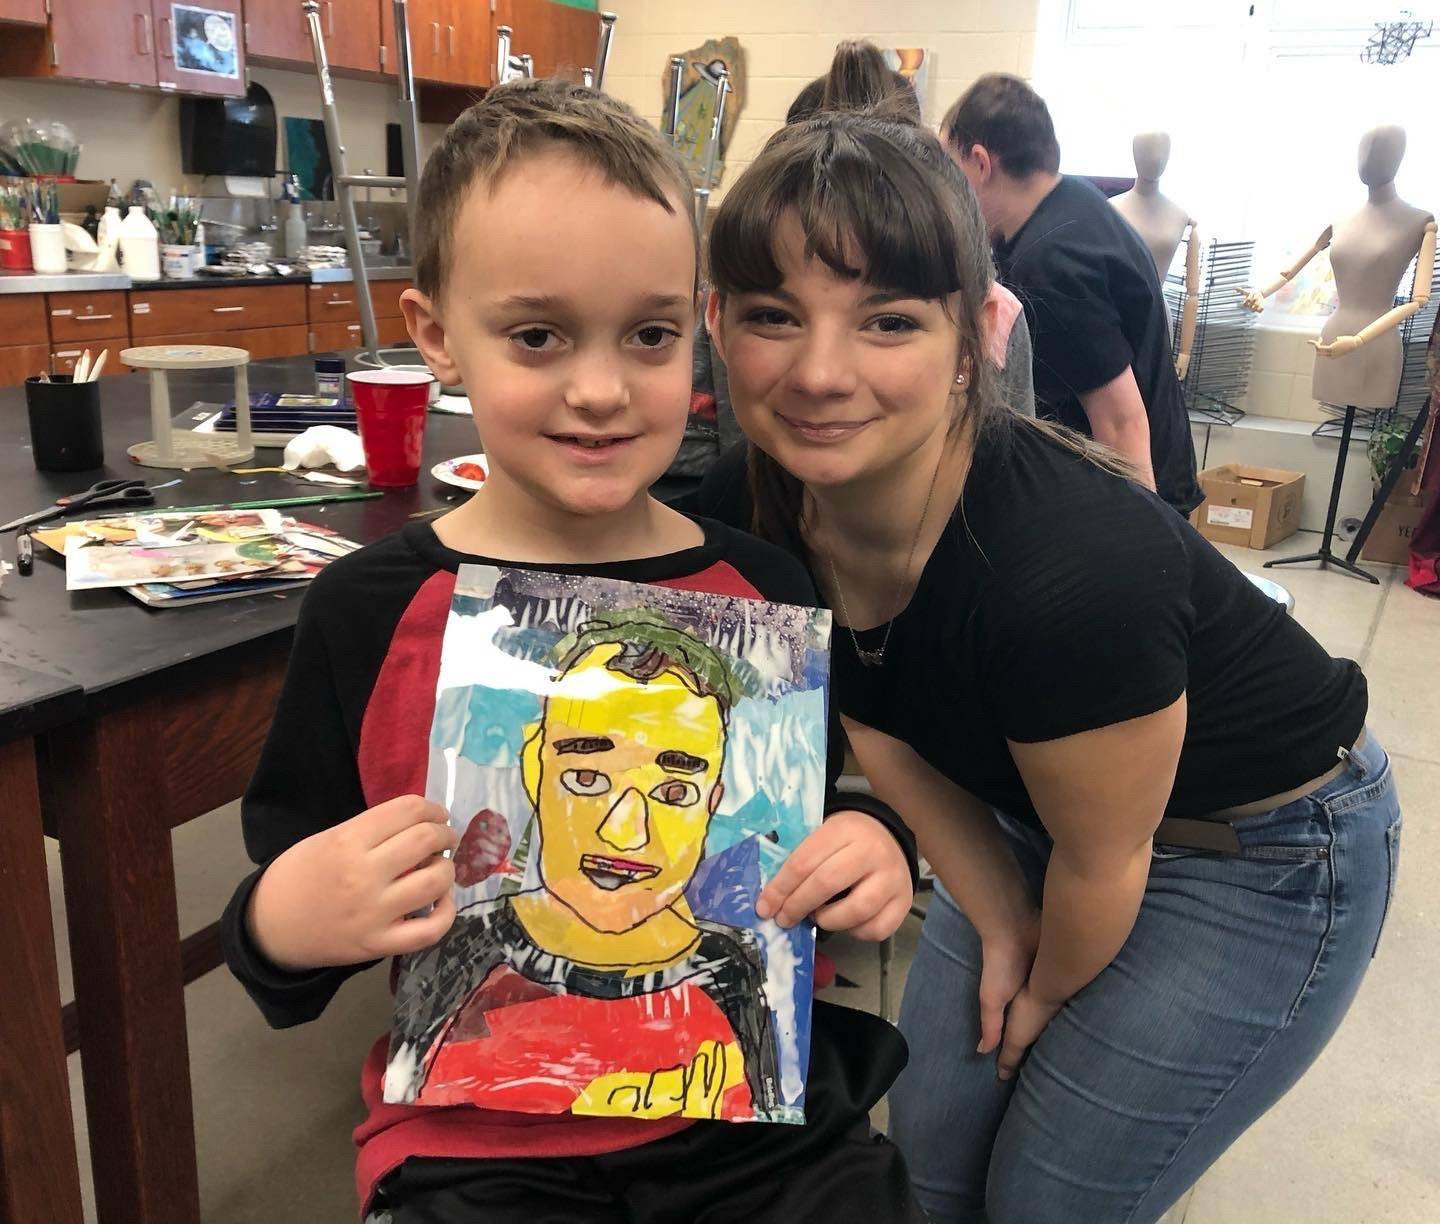 NHS Art Helps with Liv Thru Art for Children Cancer Survivors and Fighters.